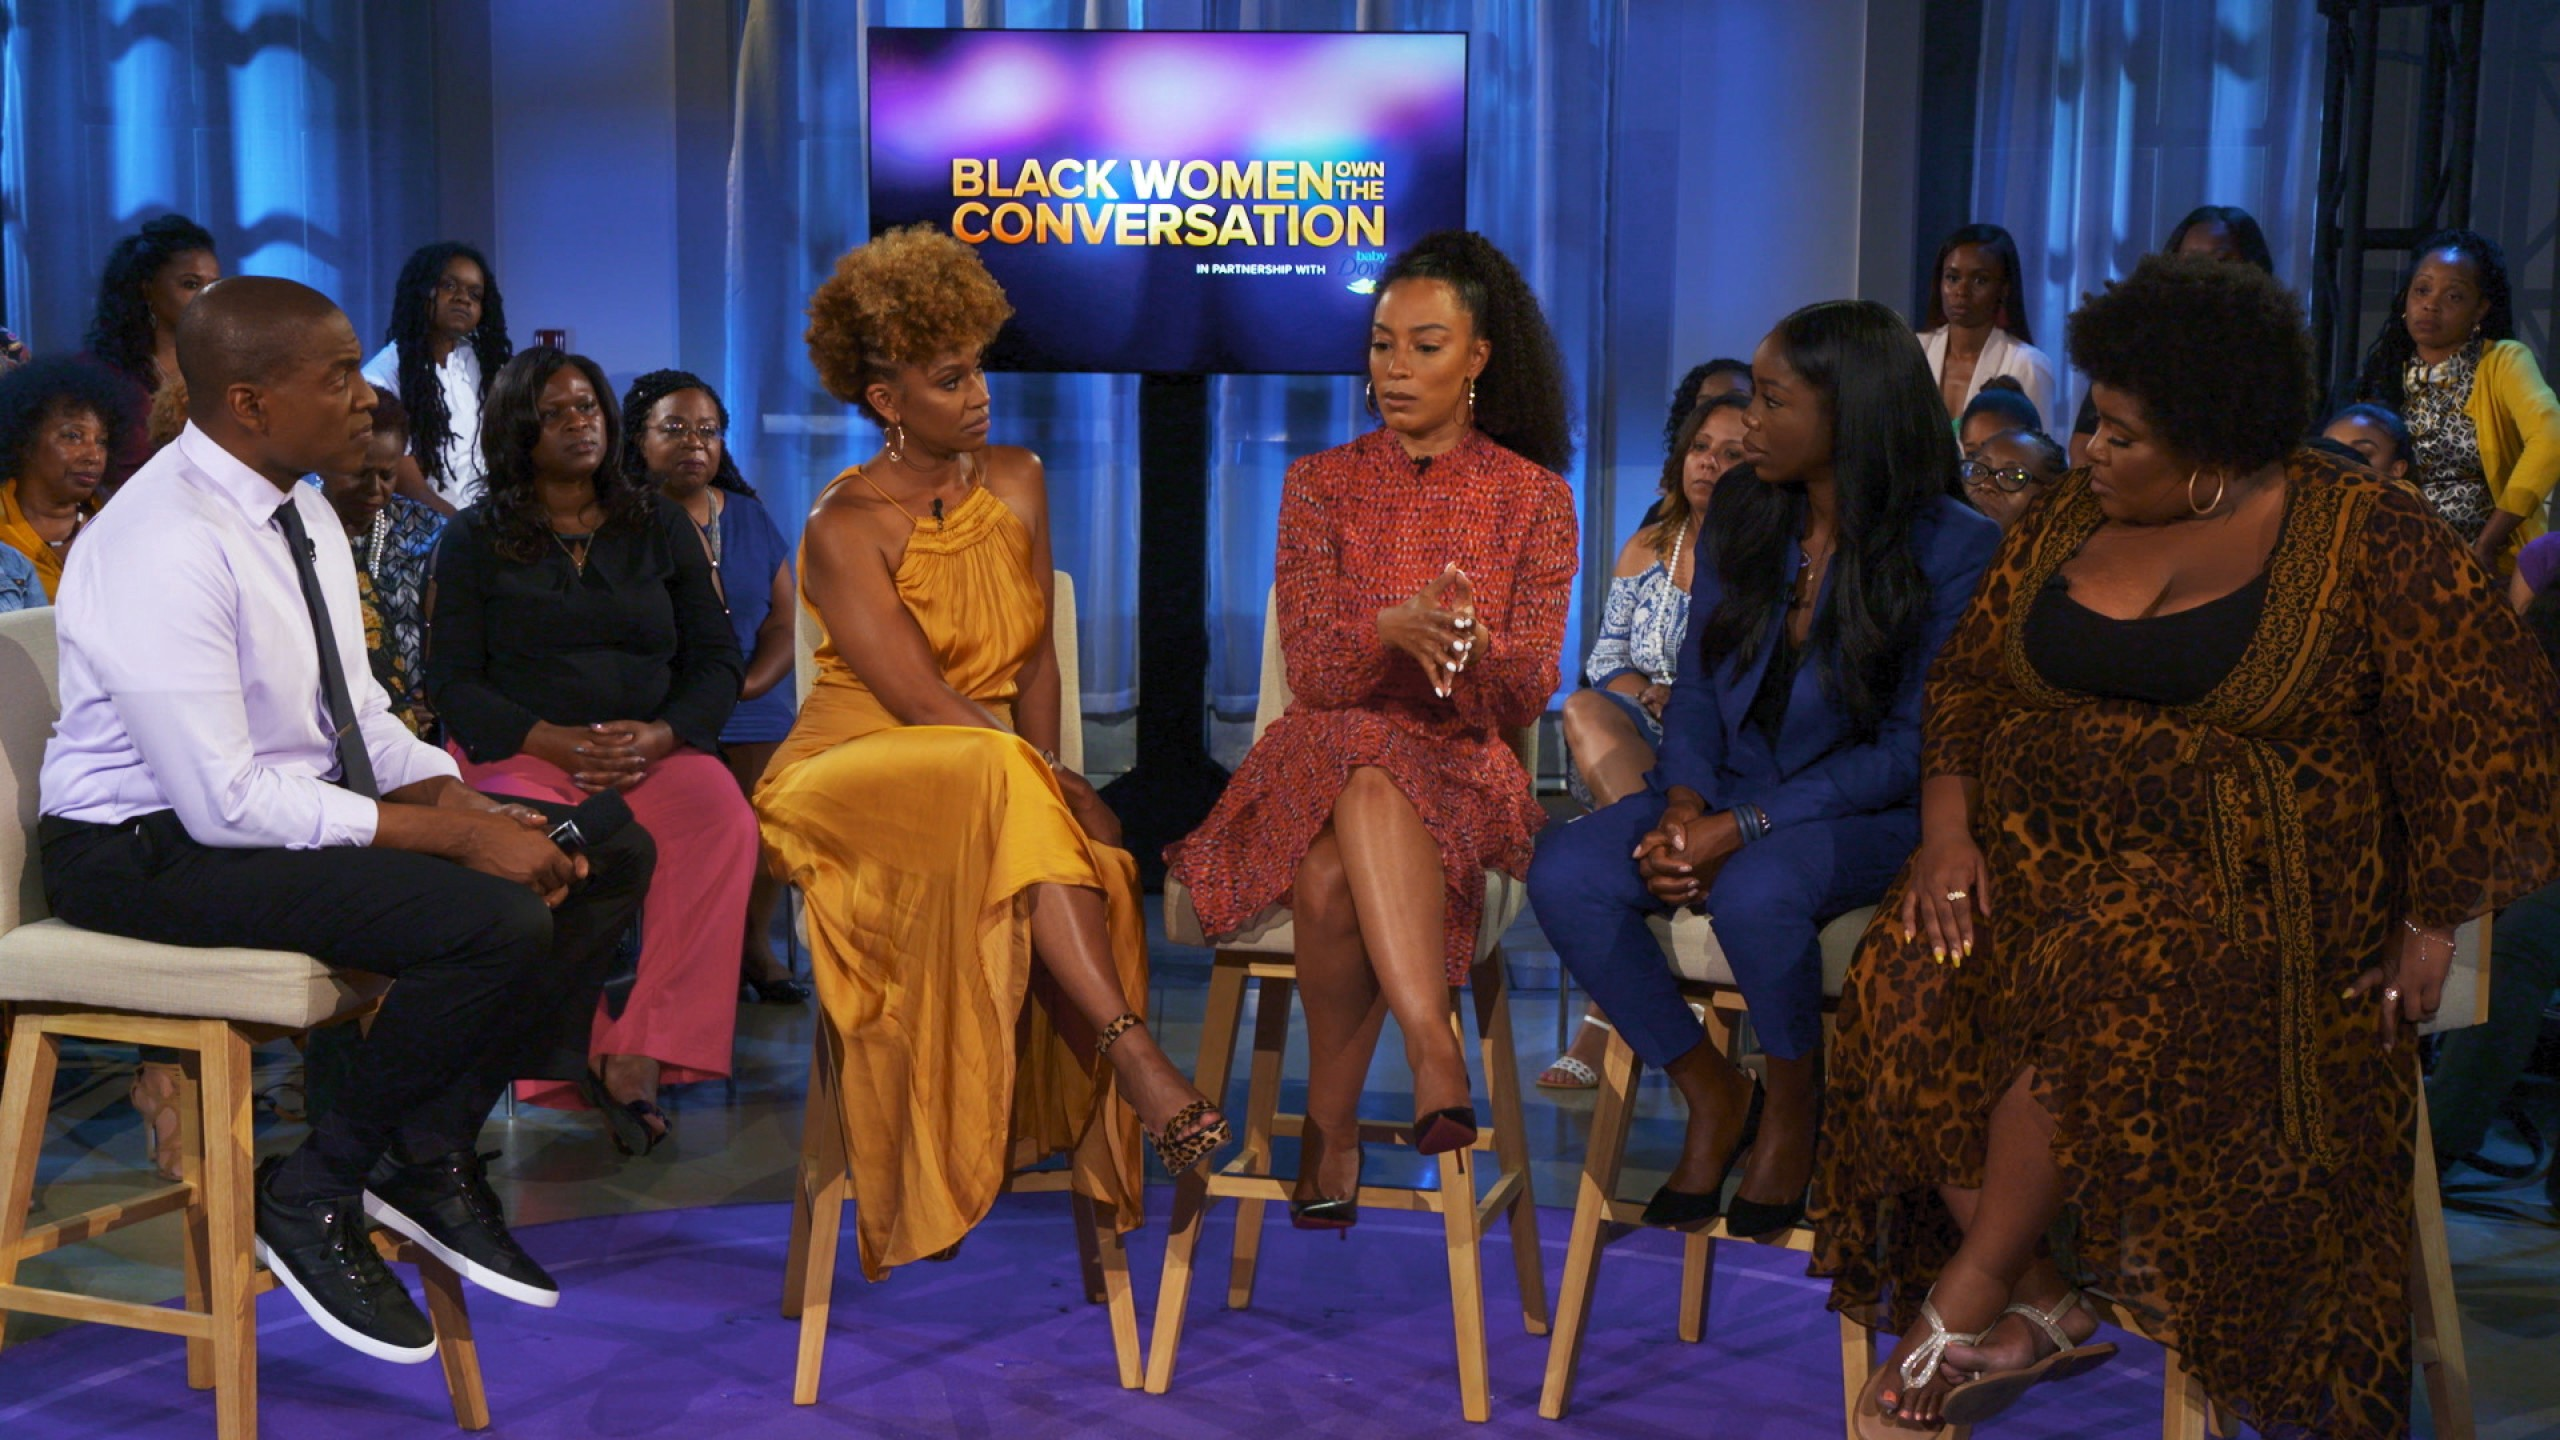 Black Women OWN the Conversation Season 1 Episode 3 'Full